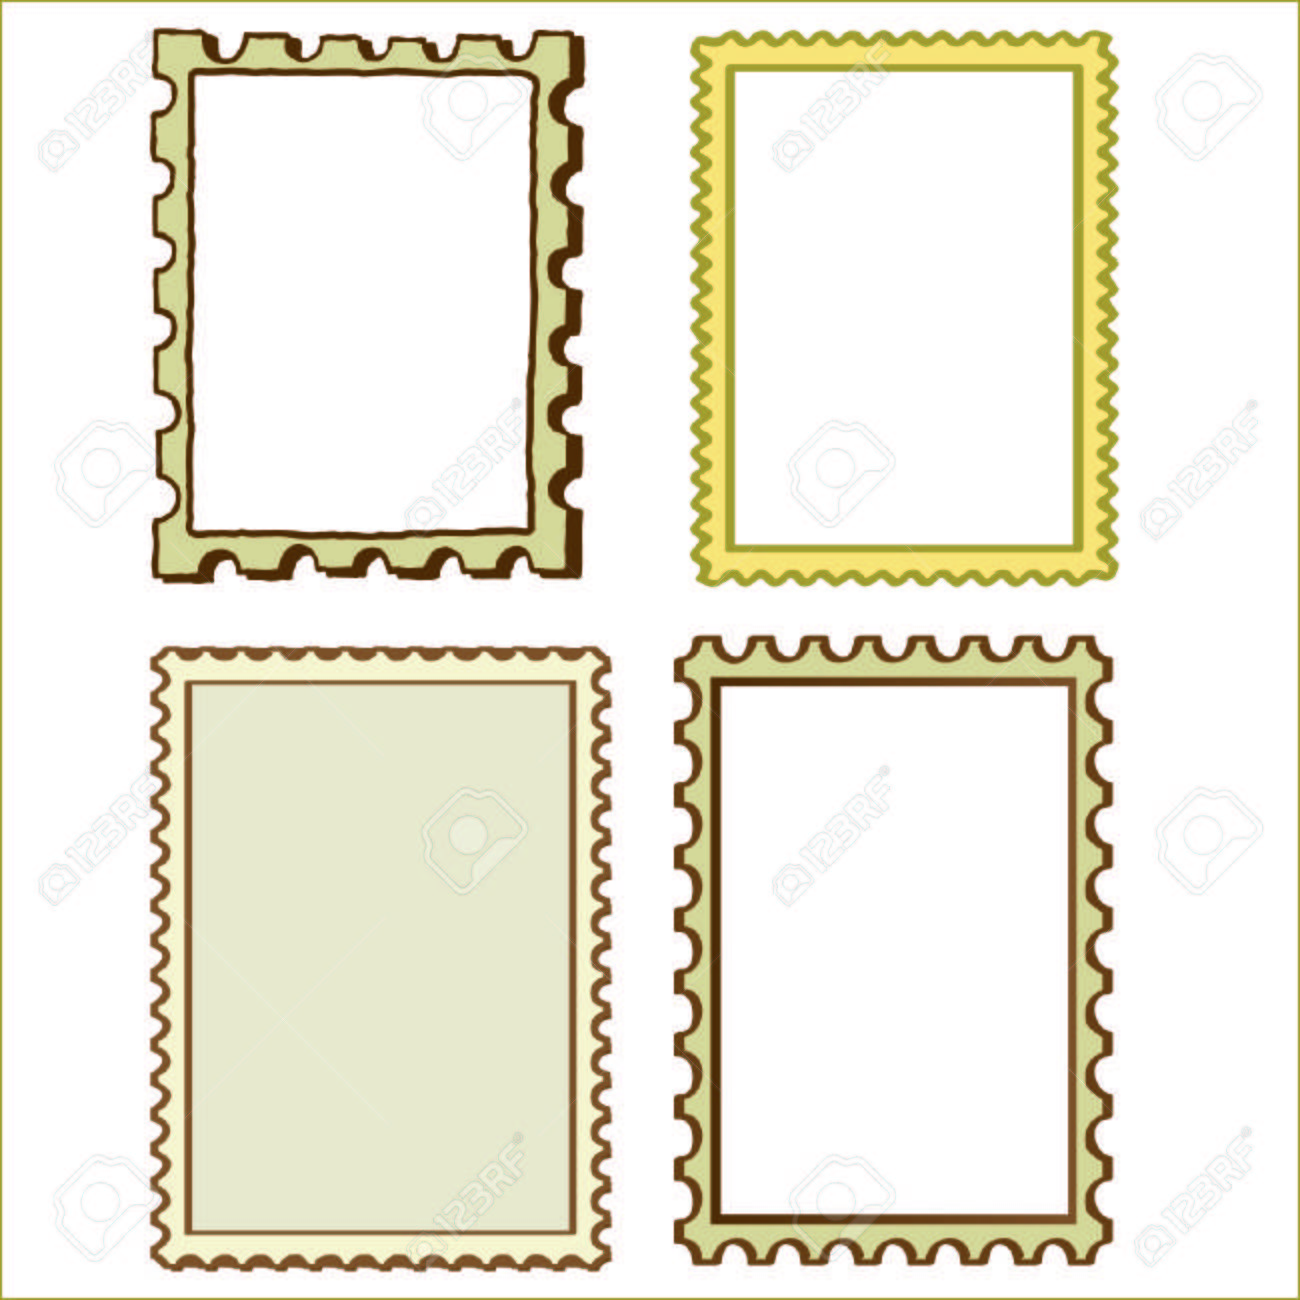 Set Of Four Stamp Border Frame Elements Stock Vector